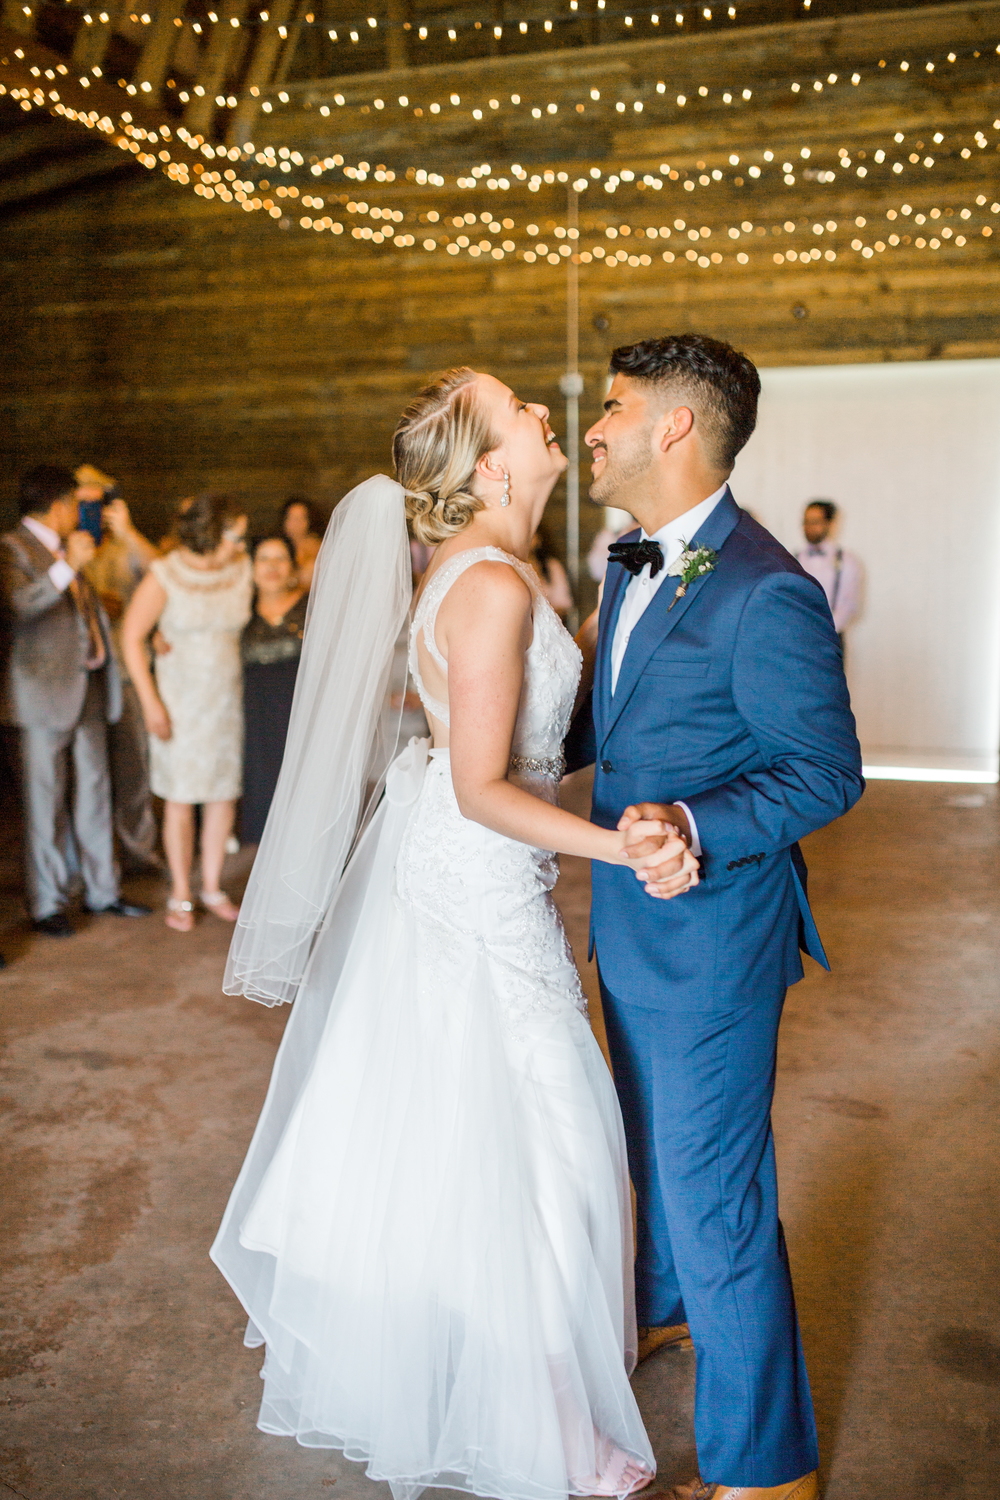 Sterling stables, brevard county FL wedding first dance photo